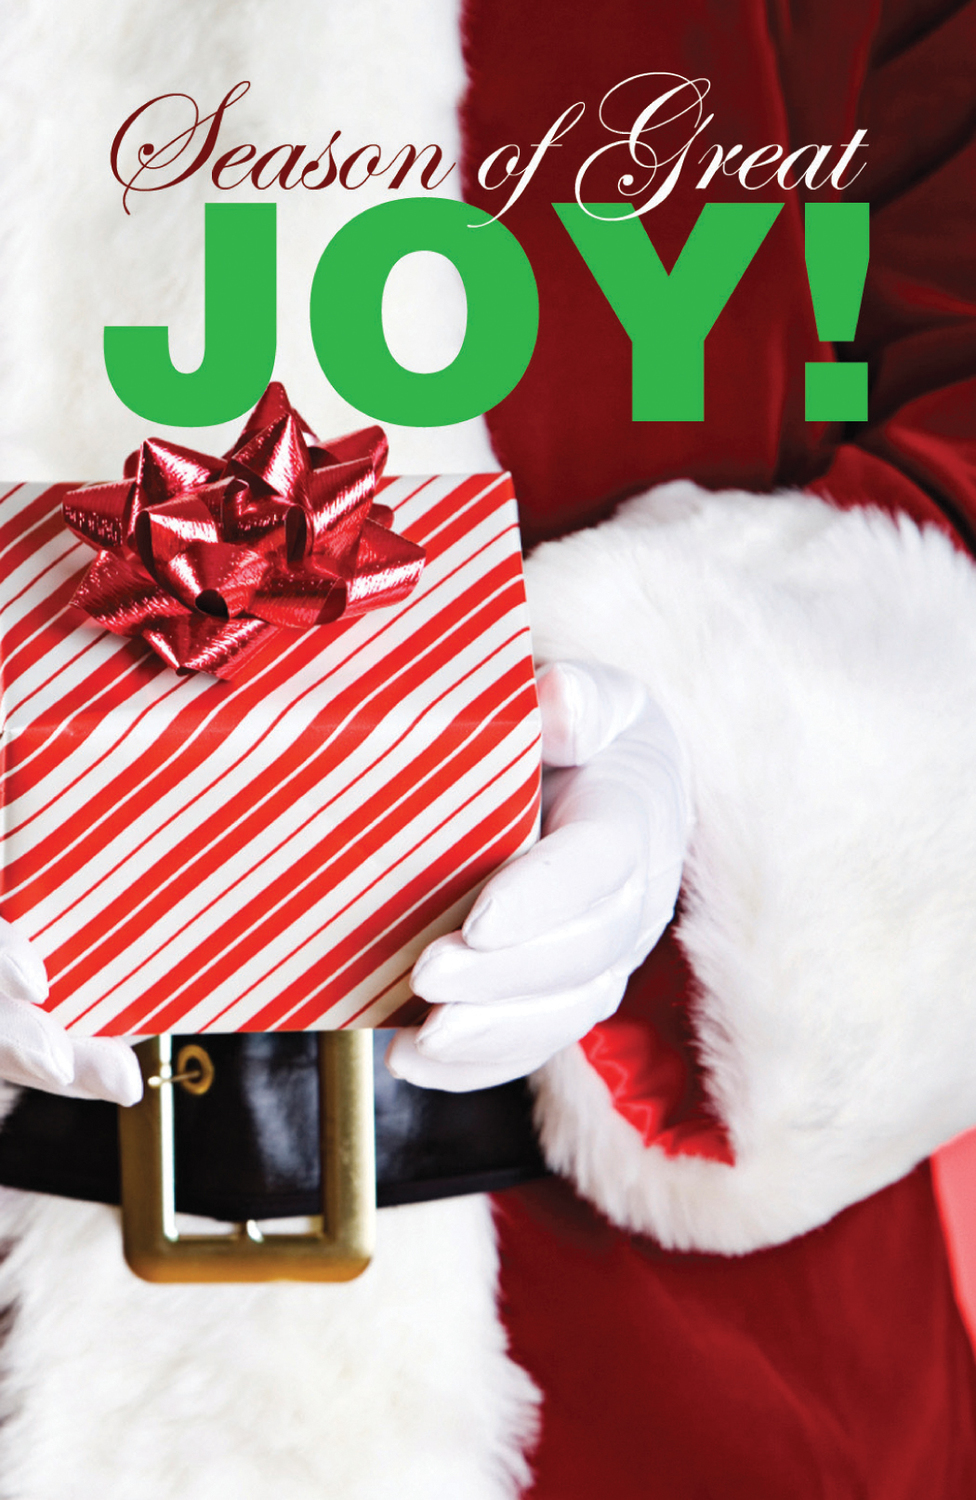 Season of Great Joy! (ATS)